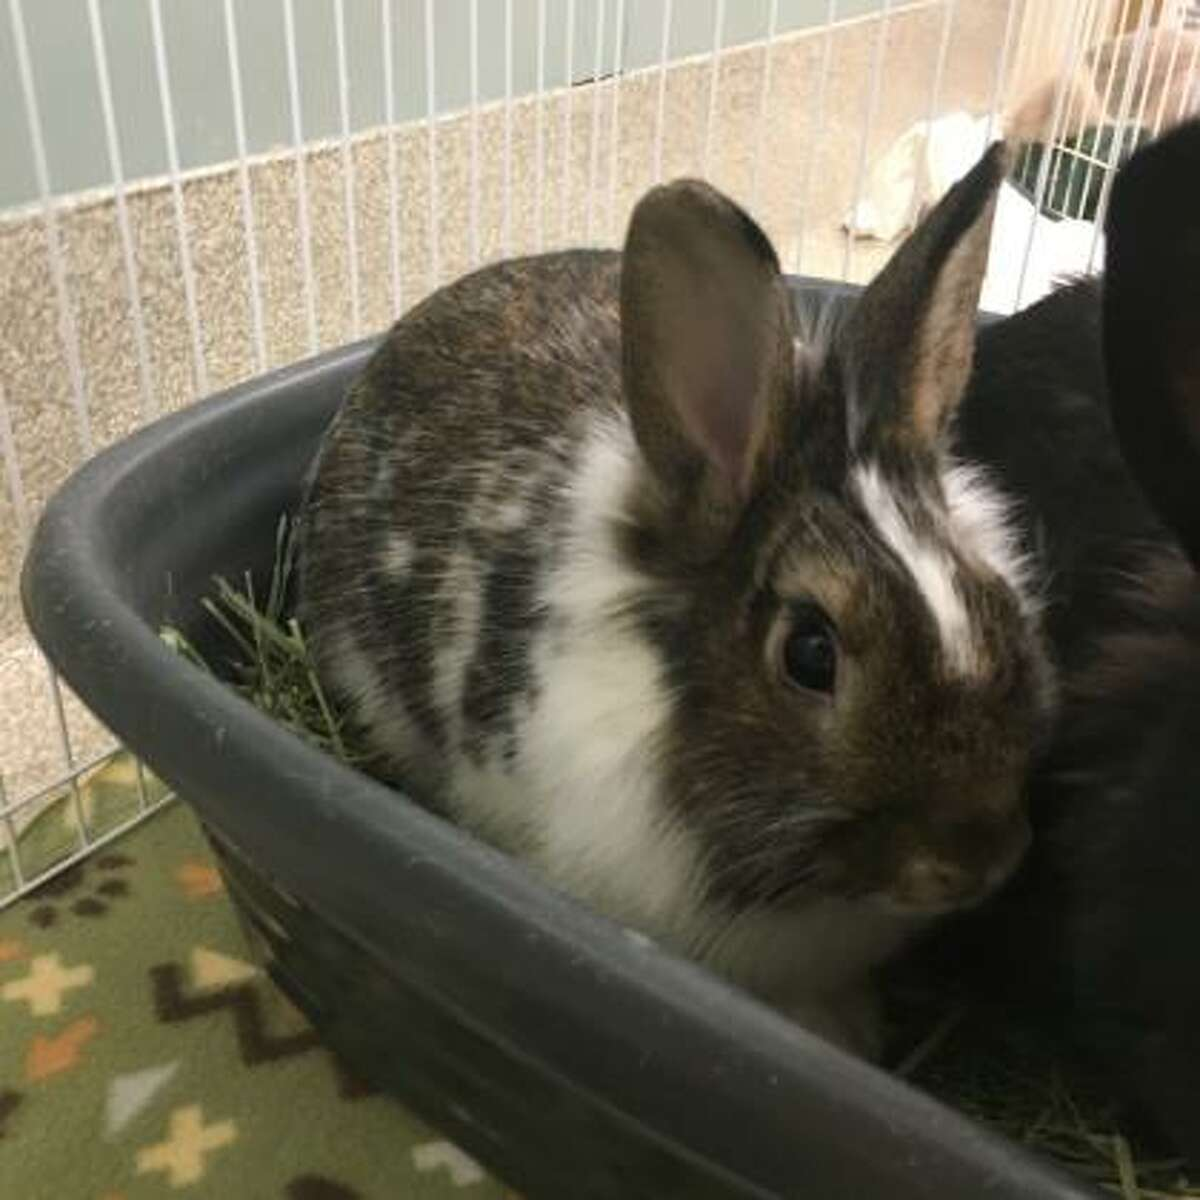 Weasley is a 2-year-old male rabbit.